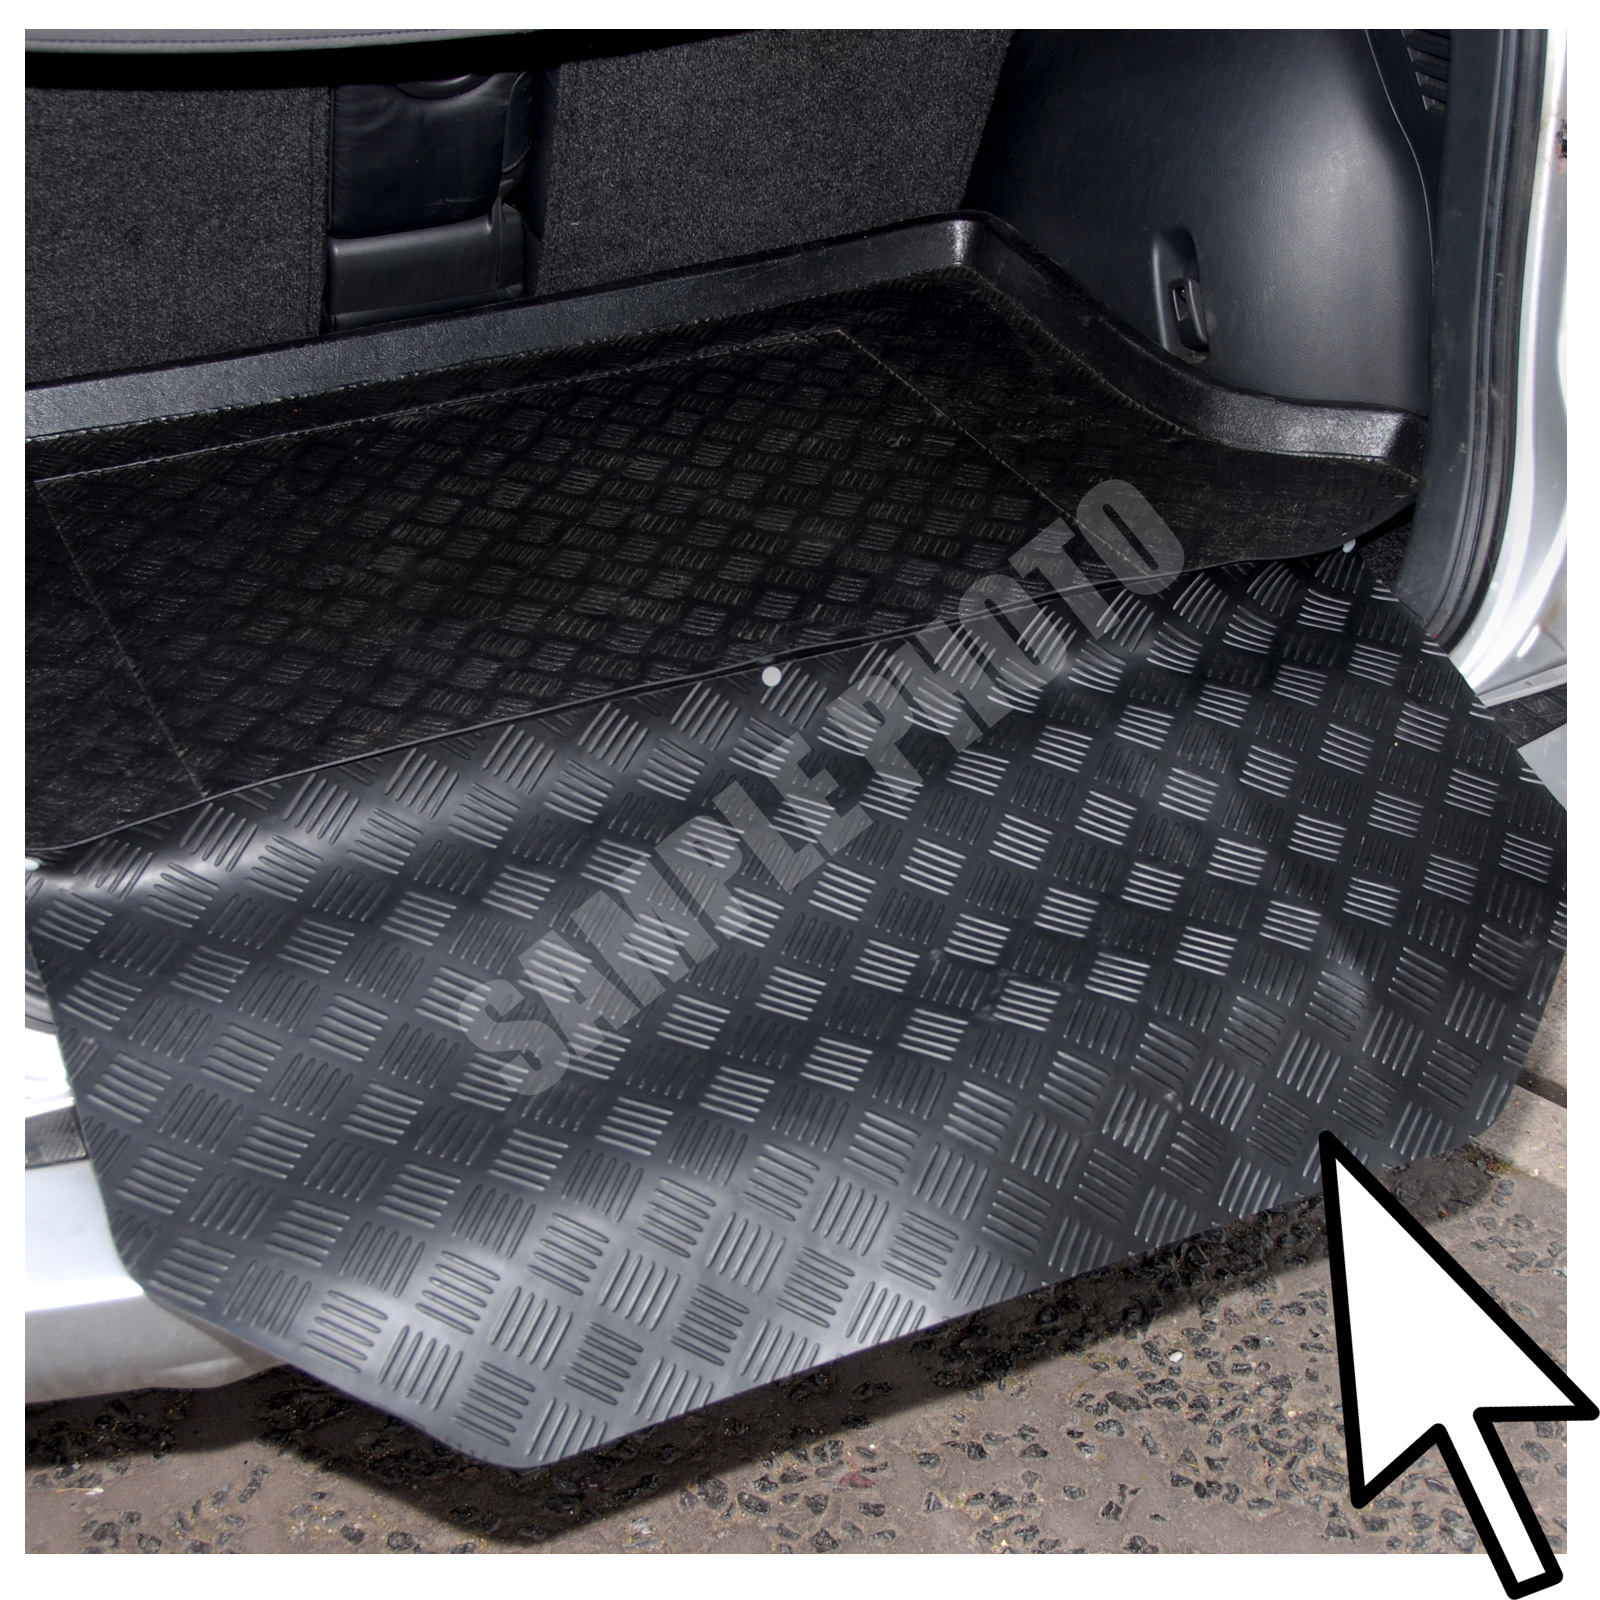 Rubber floor mats for jaguar xf - Item Description